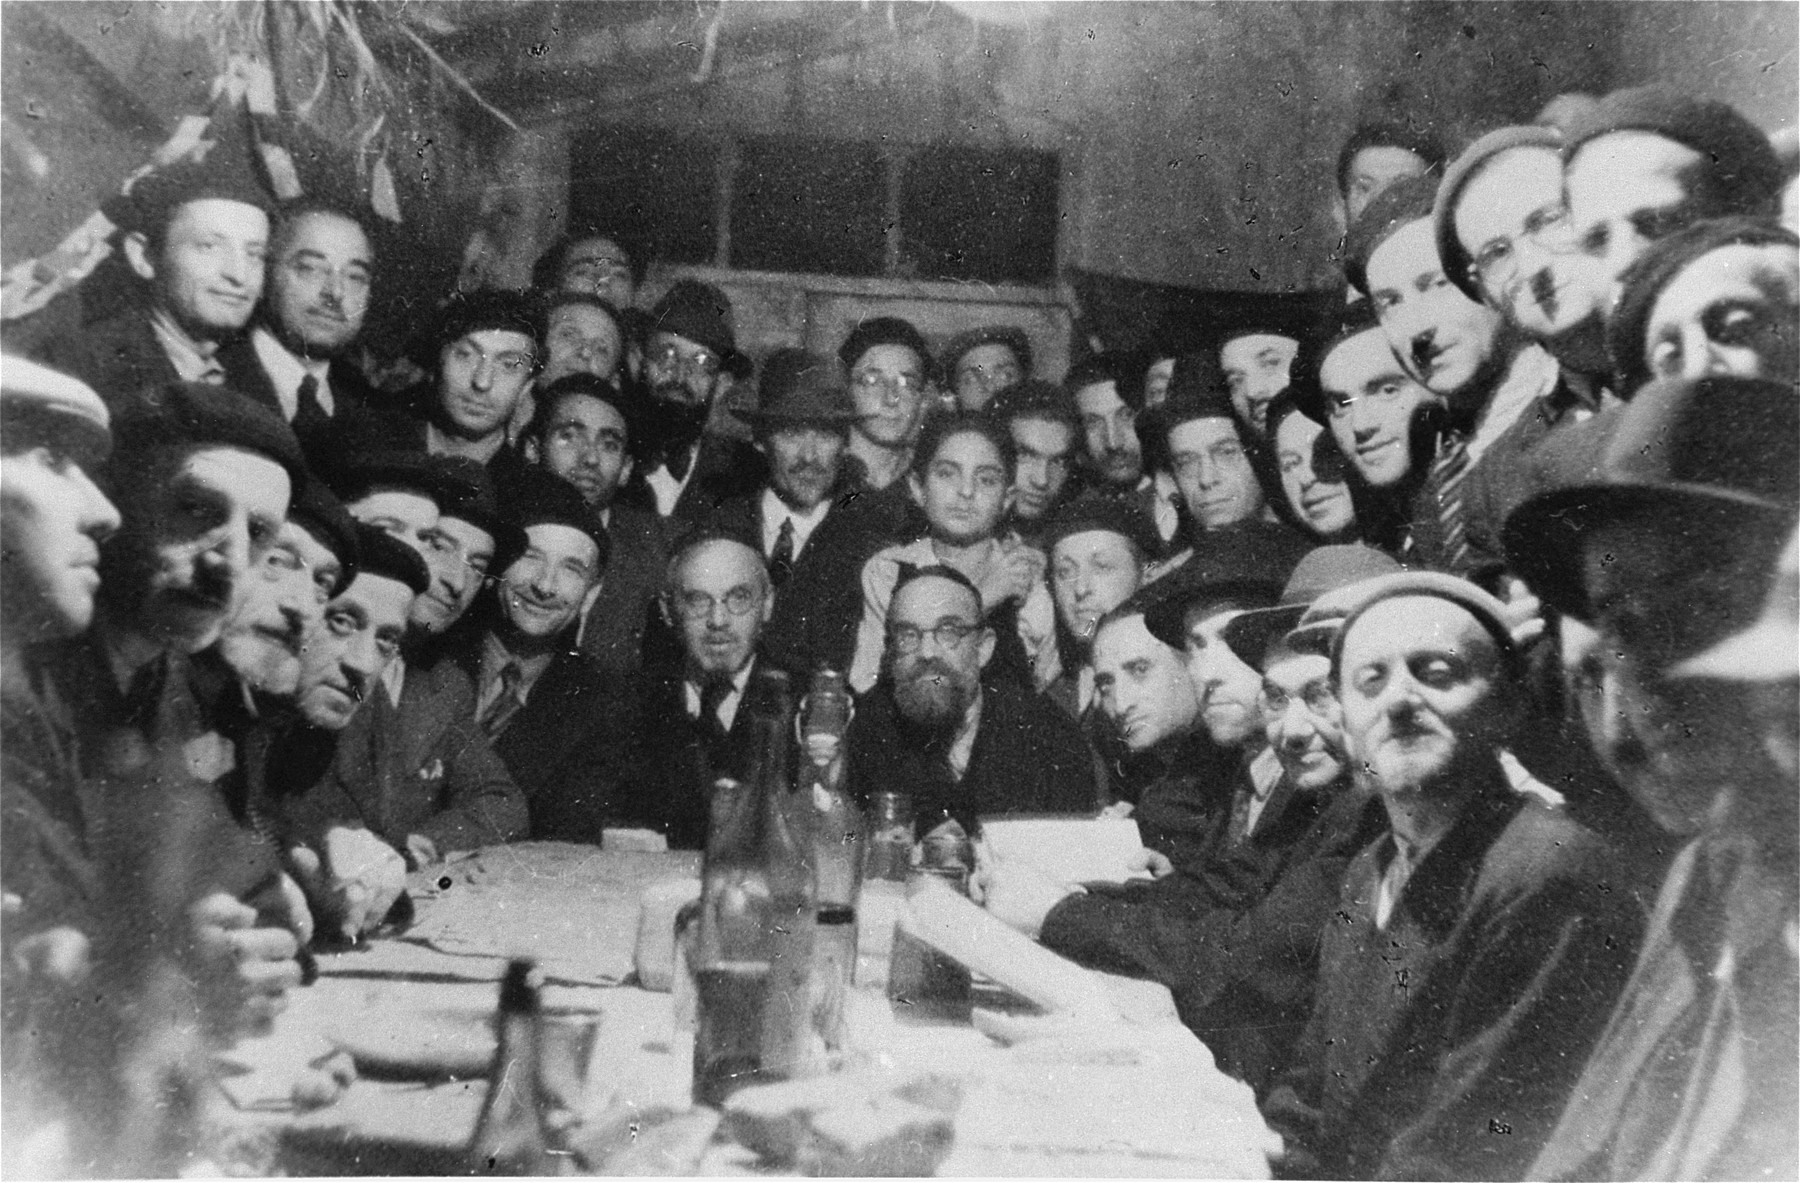 Jewish prisoners celebrate the holiday of Hoshanah Rabbah in a Sukkah in the Les Milles transit camp.    Among those pictured is Rabbi Siegmund Marx (left of center, wearing a beard), a Jewish refugee from Speyer, Germany.